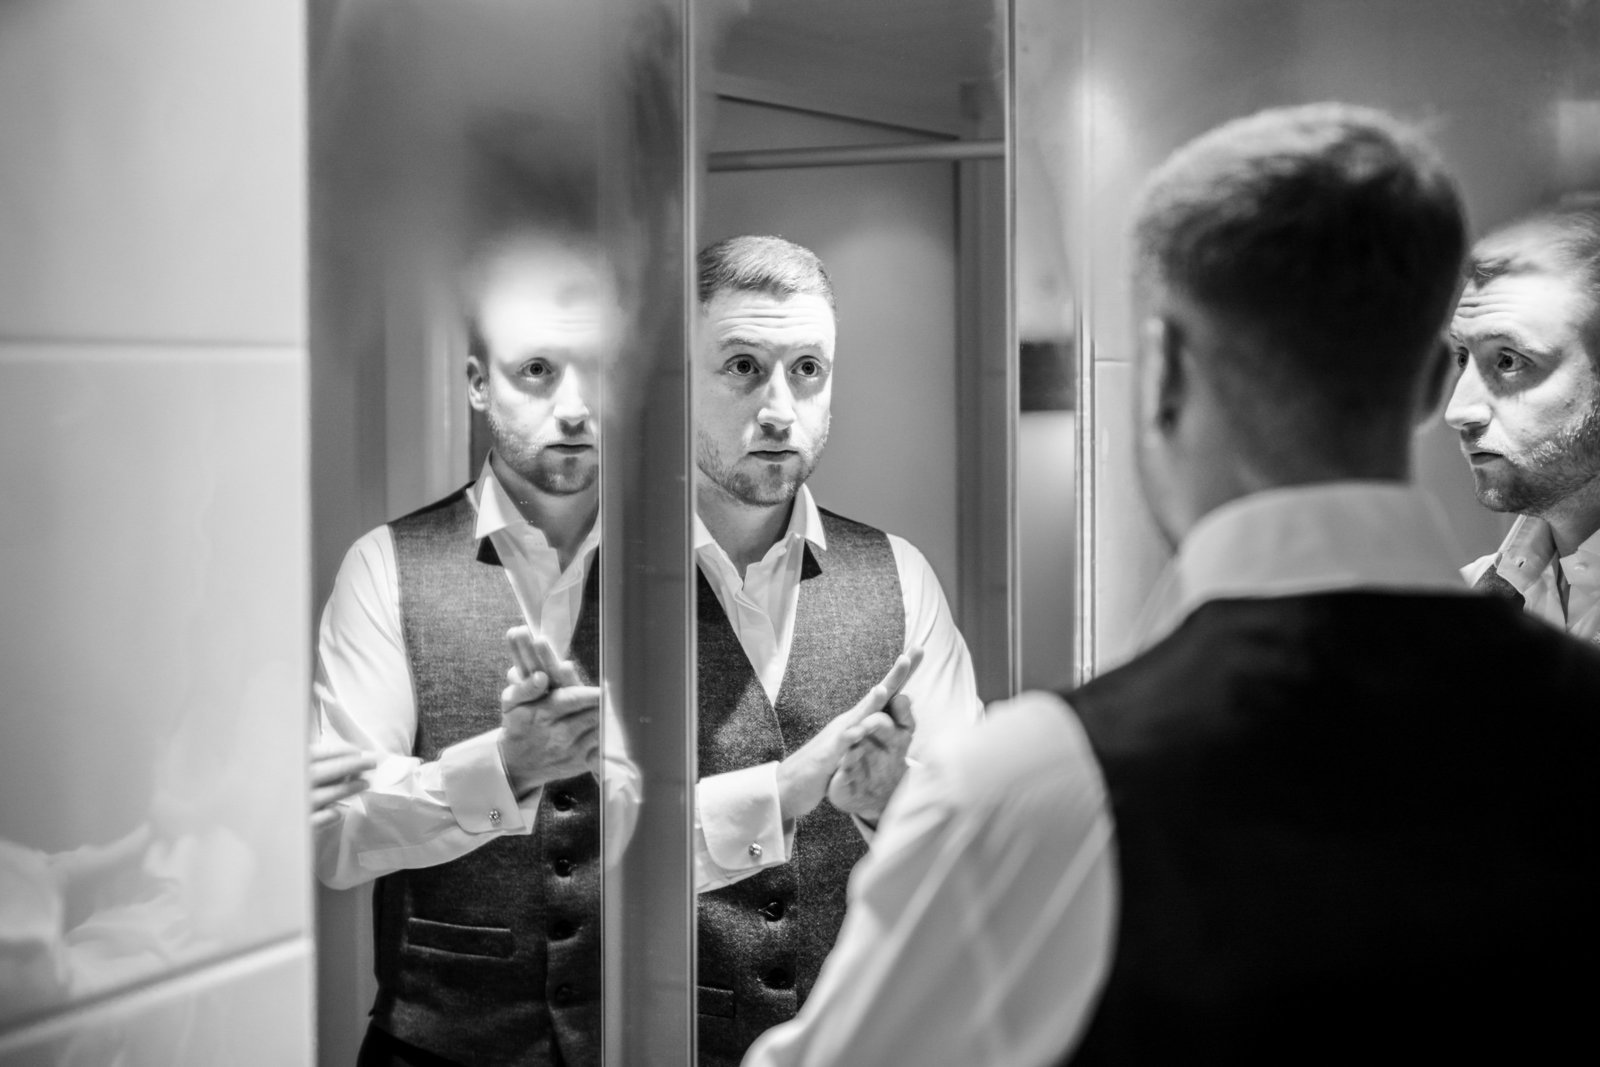 A groom prepares for his wedding day in front of multiple mirrors in a bathroom in Norfolk.